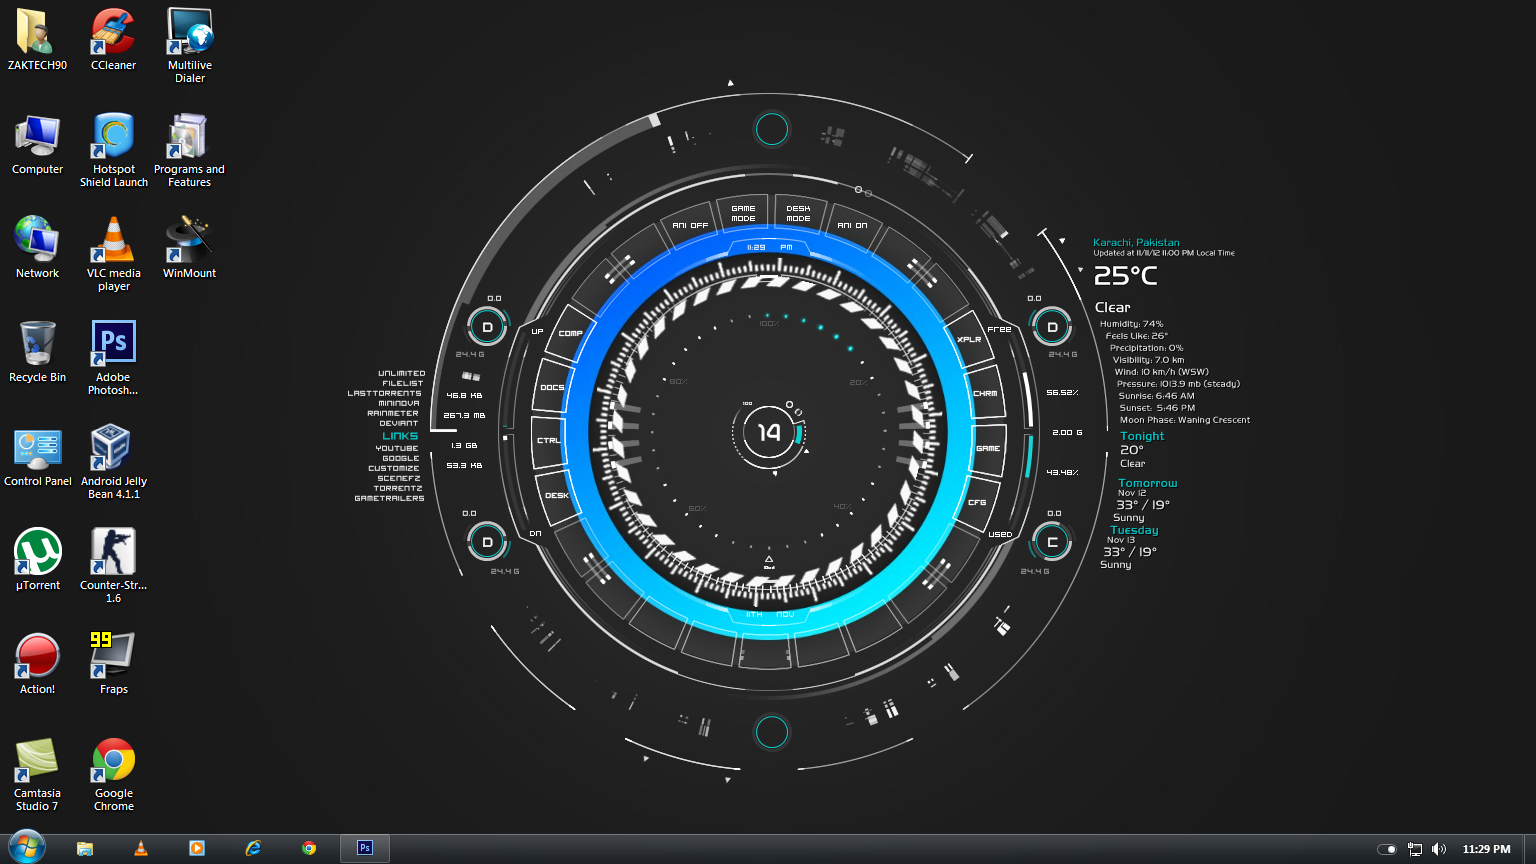 Windows 7 rainmeter by zaktech90 on deviantart for Bureau windows 7 rainmeter